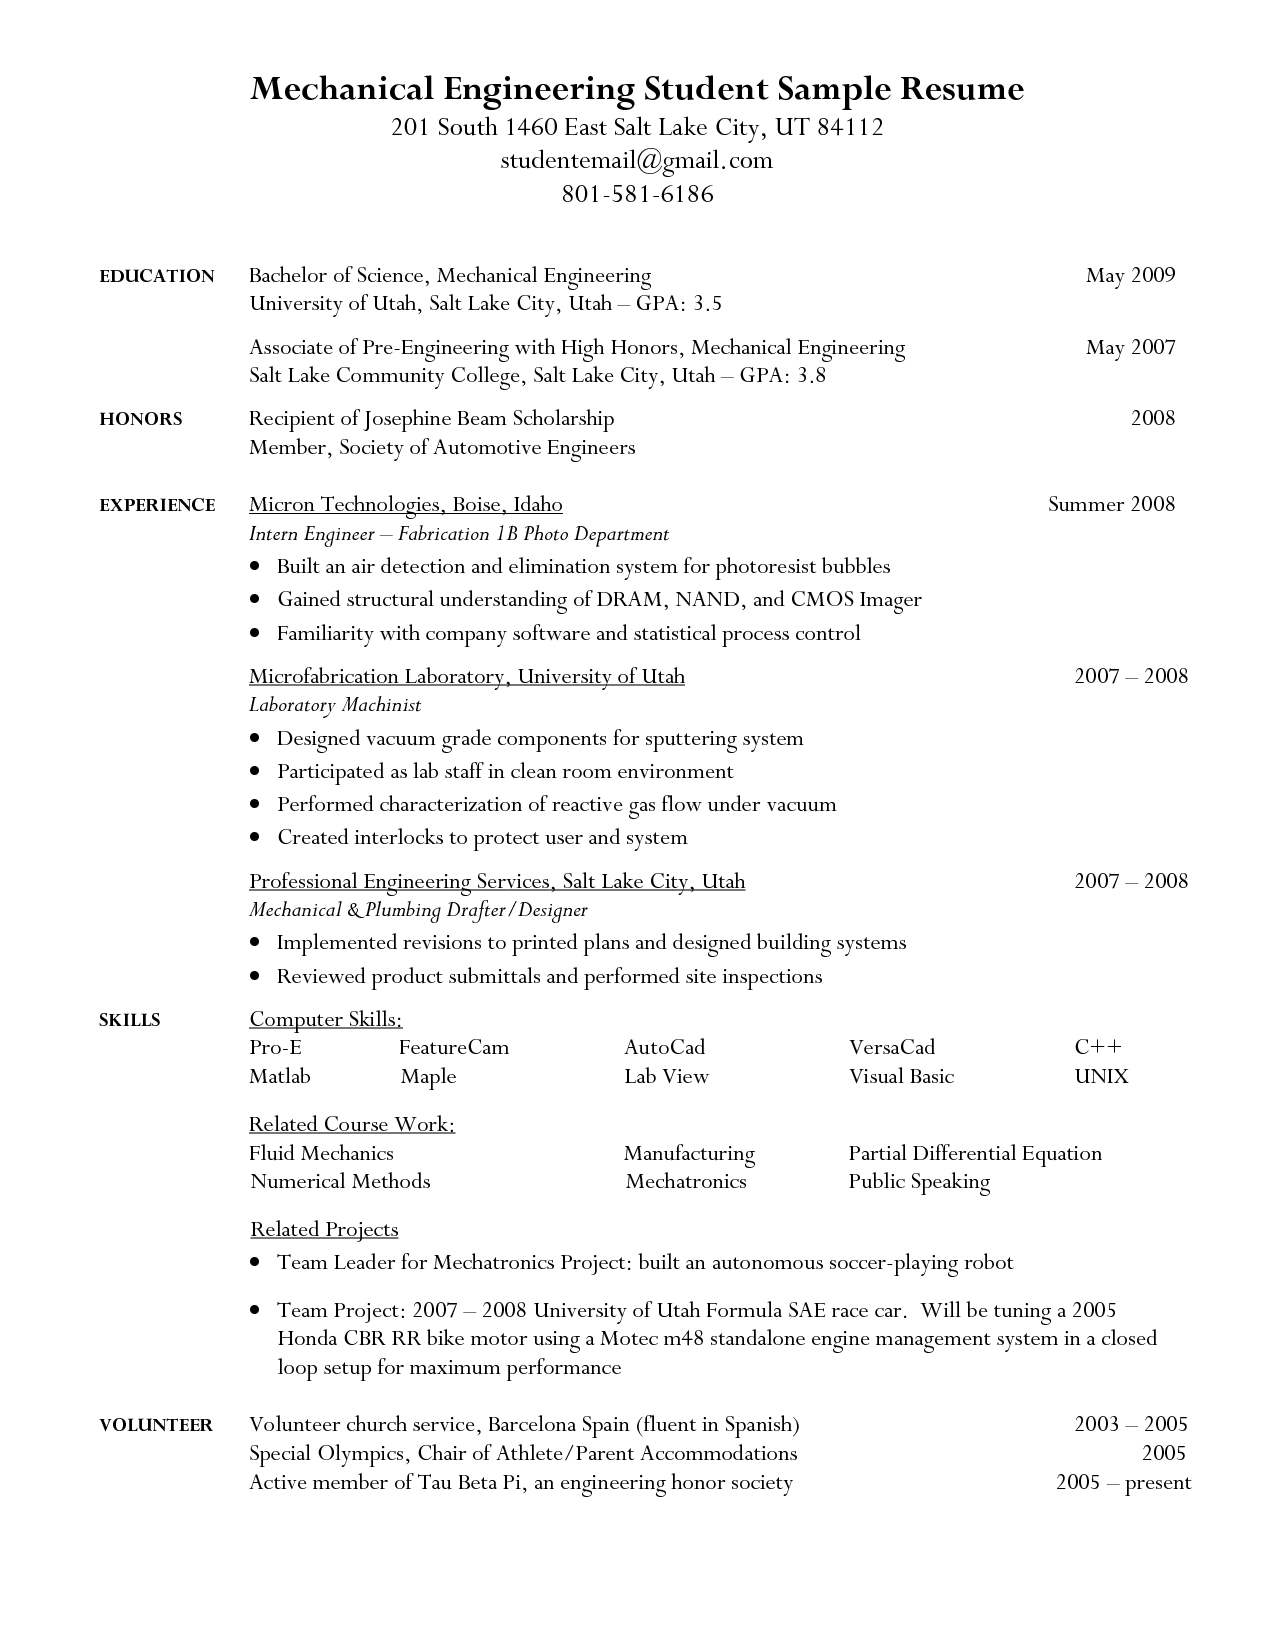 Resumes Examples For College Students Engineering Student Resume Google Search Resumes